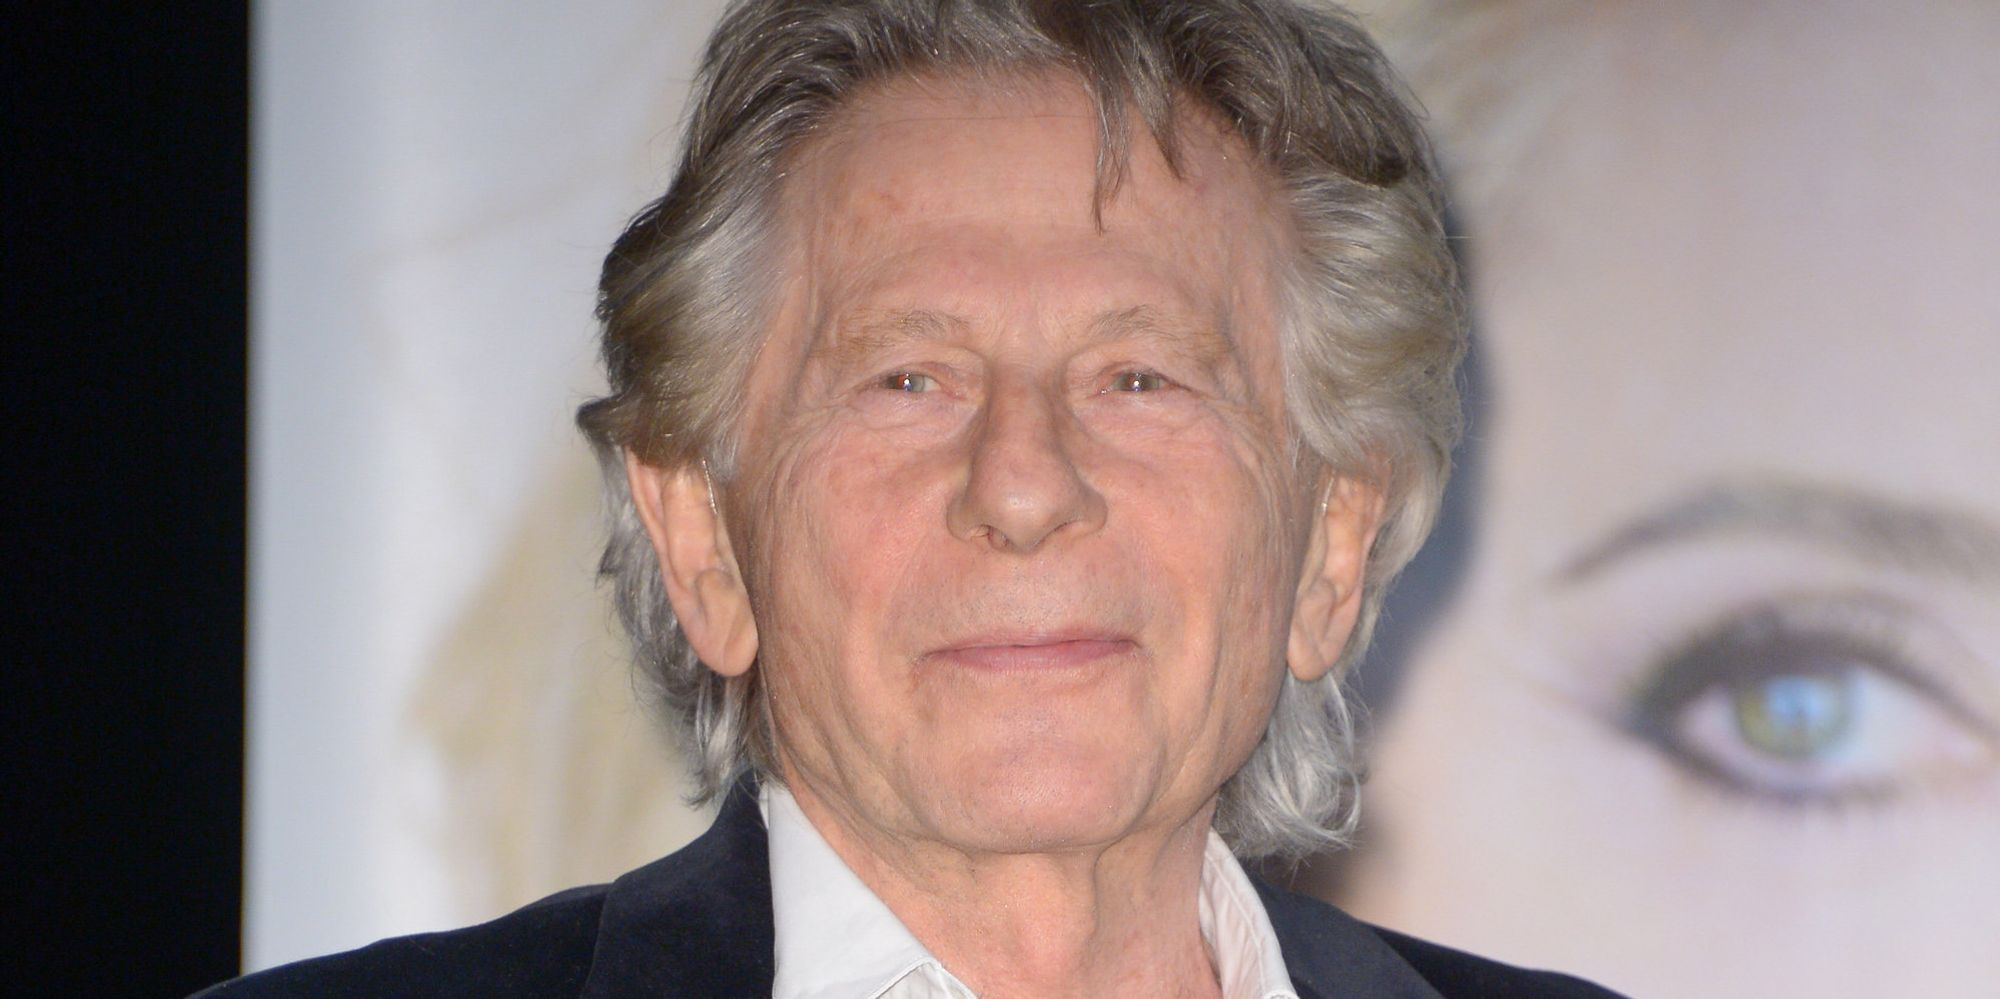 u s extradition request for r polanski rejected by s u s extradition request for r polanski rejected by s supreme court the huffington post